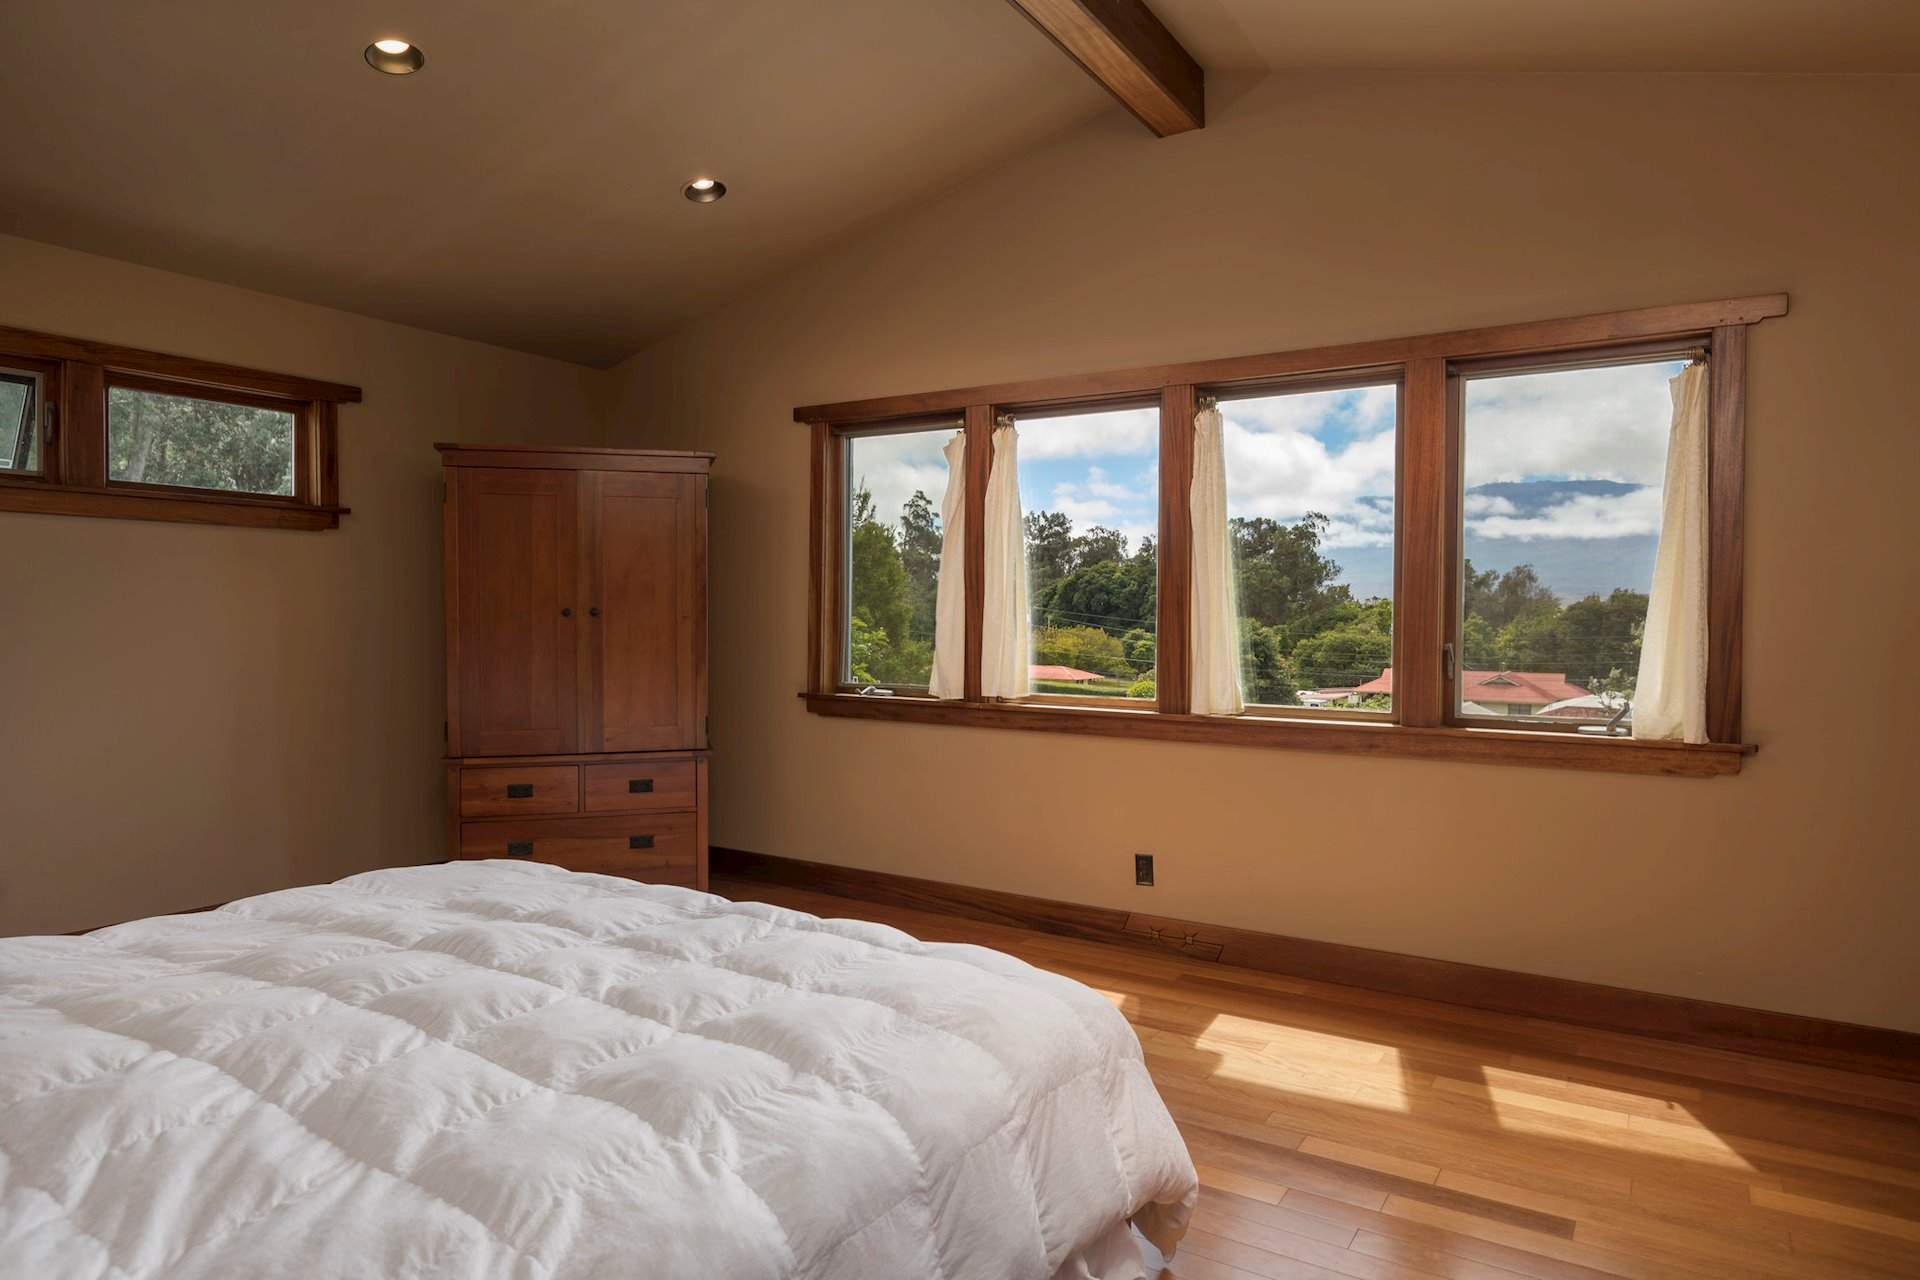 Master bedroom with views to Mauna Kea.